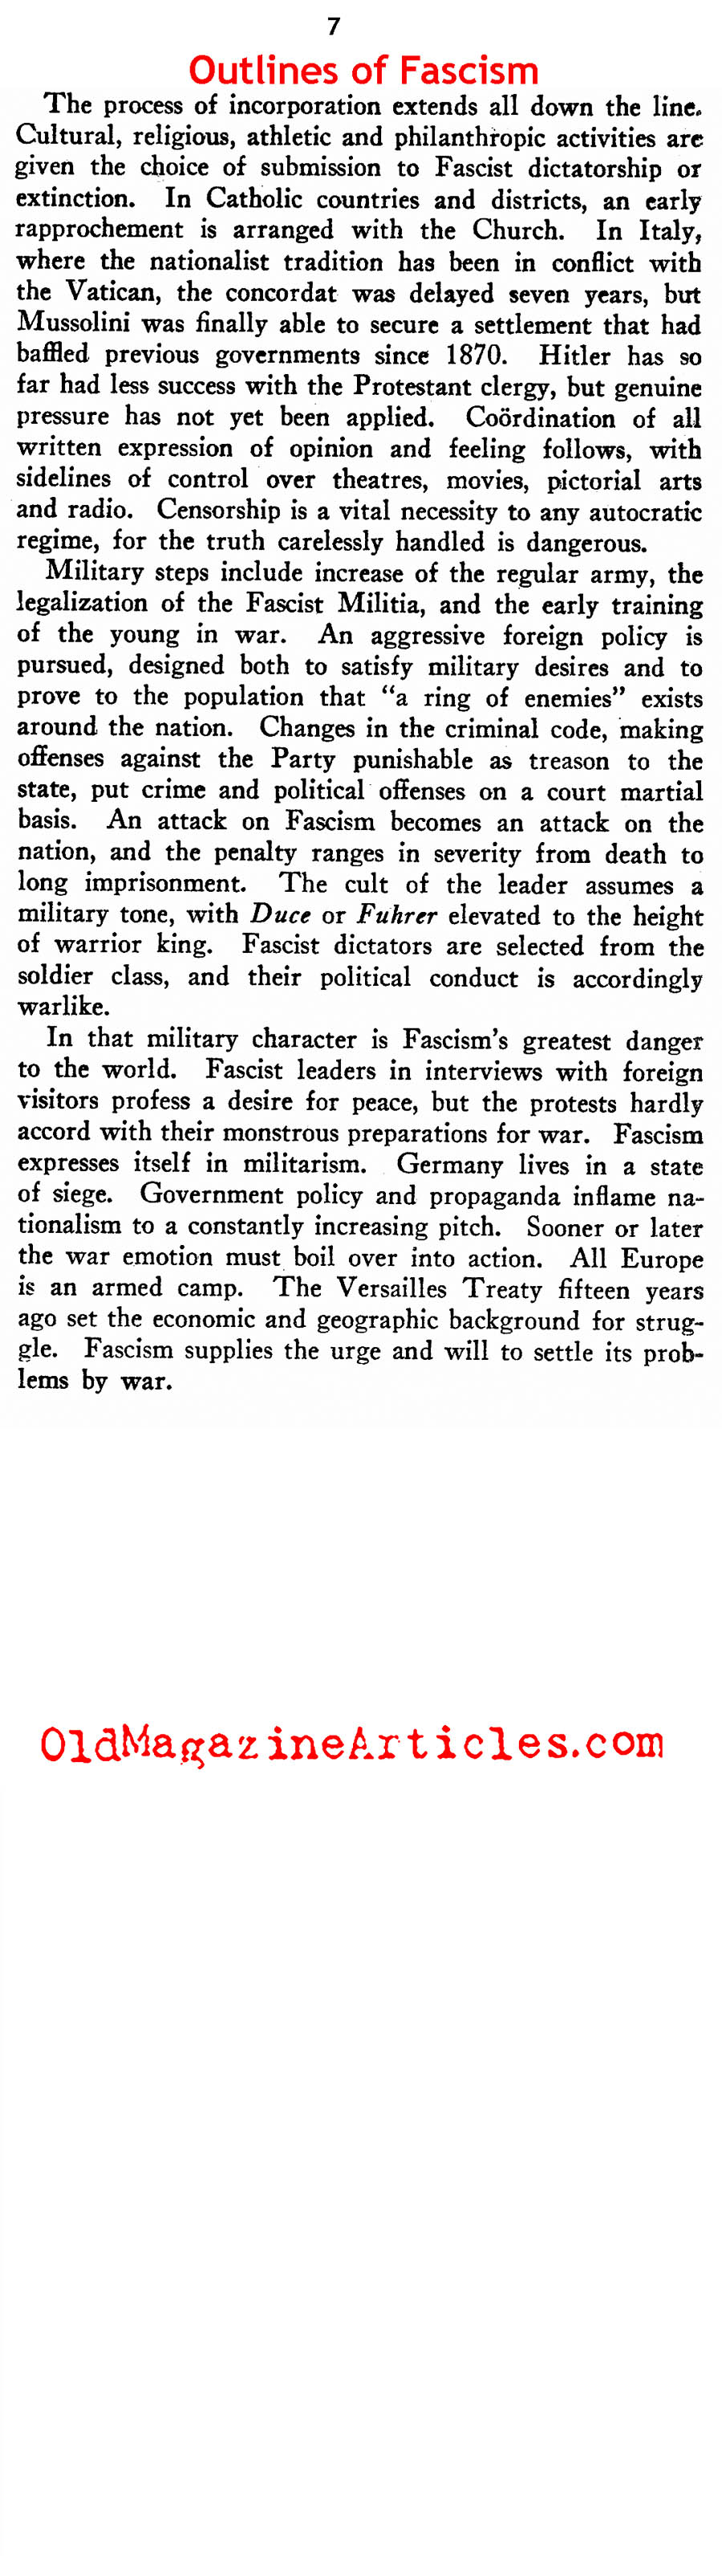 ''Outlines of Fascism'' (New Outlook Magazine, 1934)